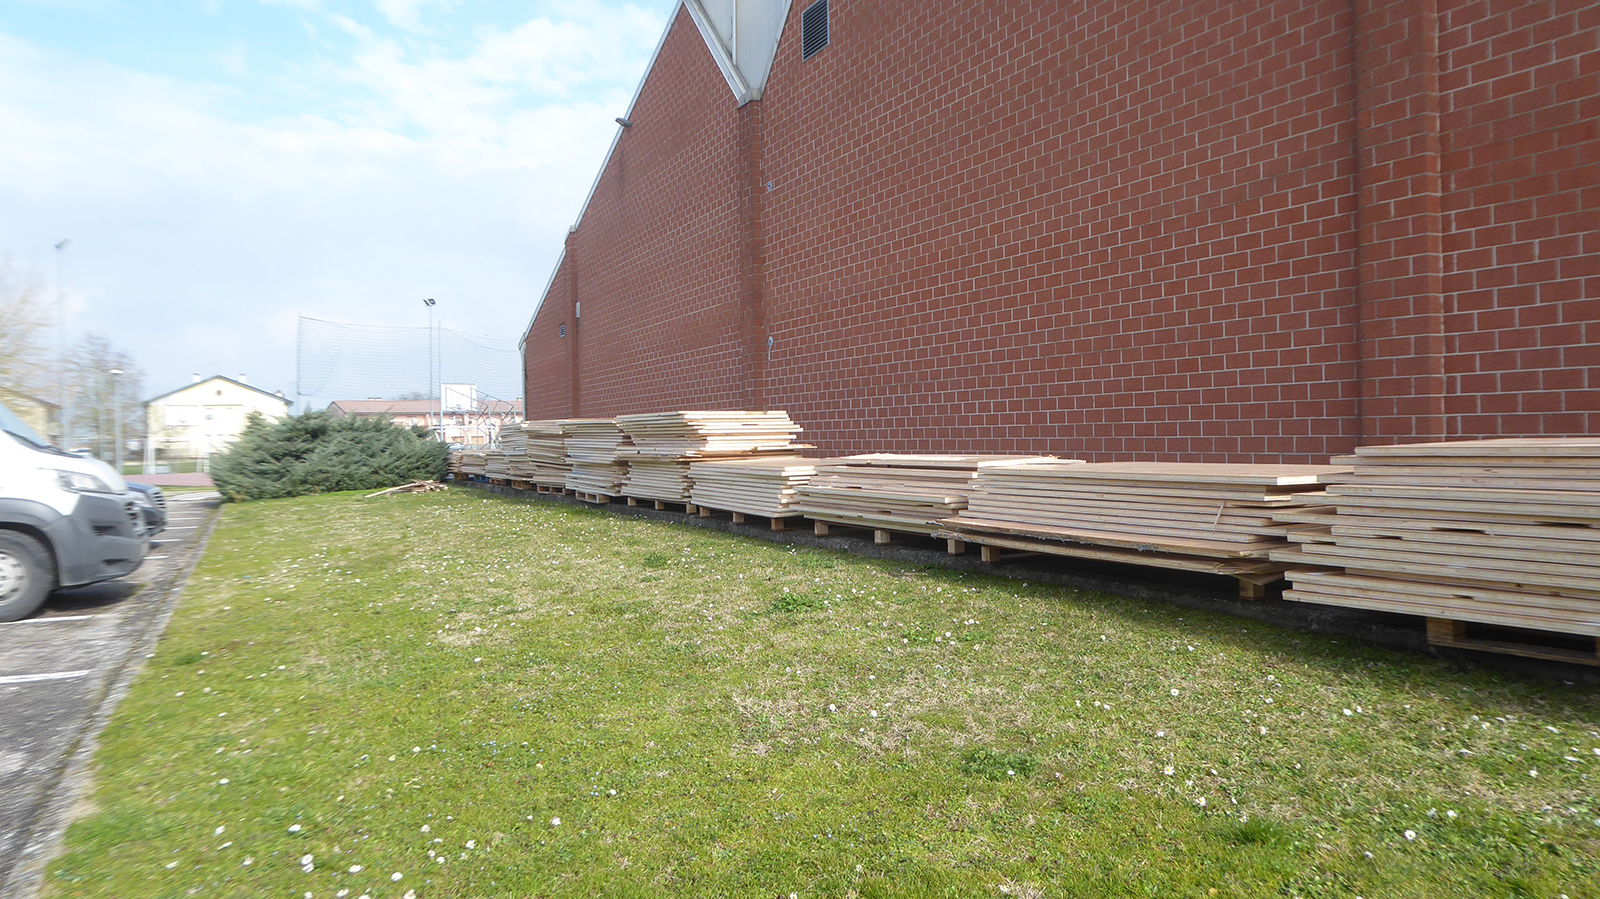 The old material stacked outside the sports facility